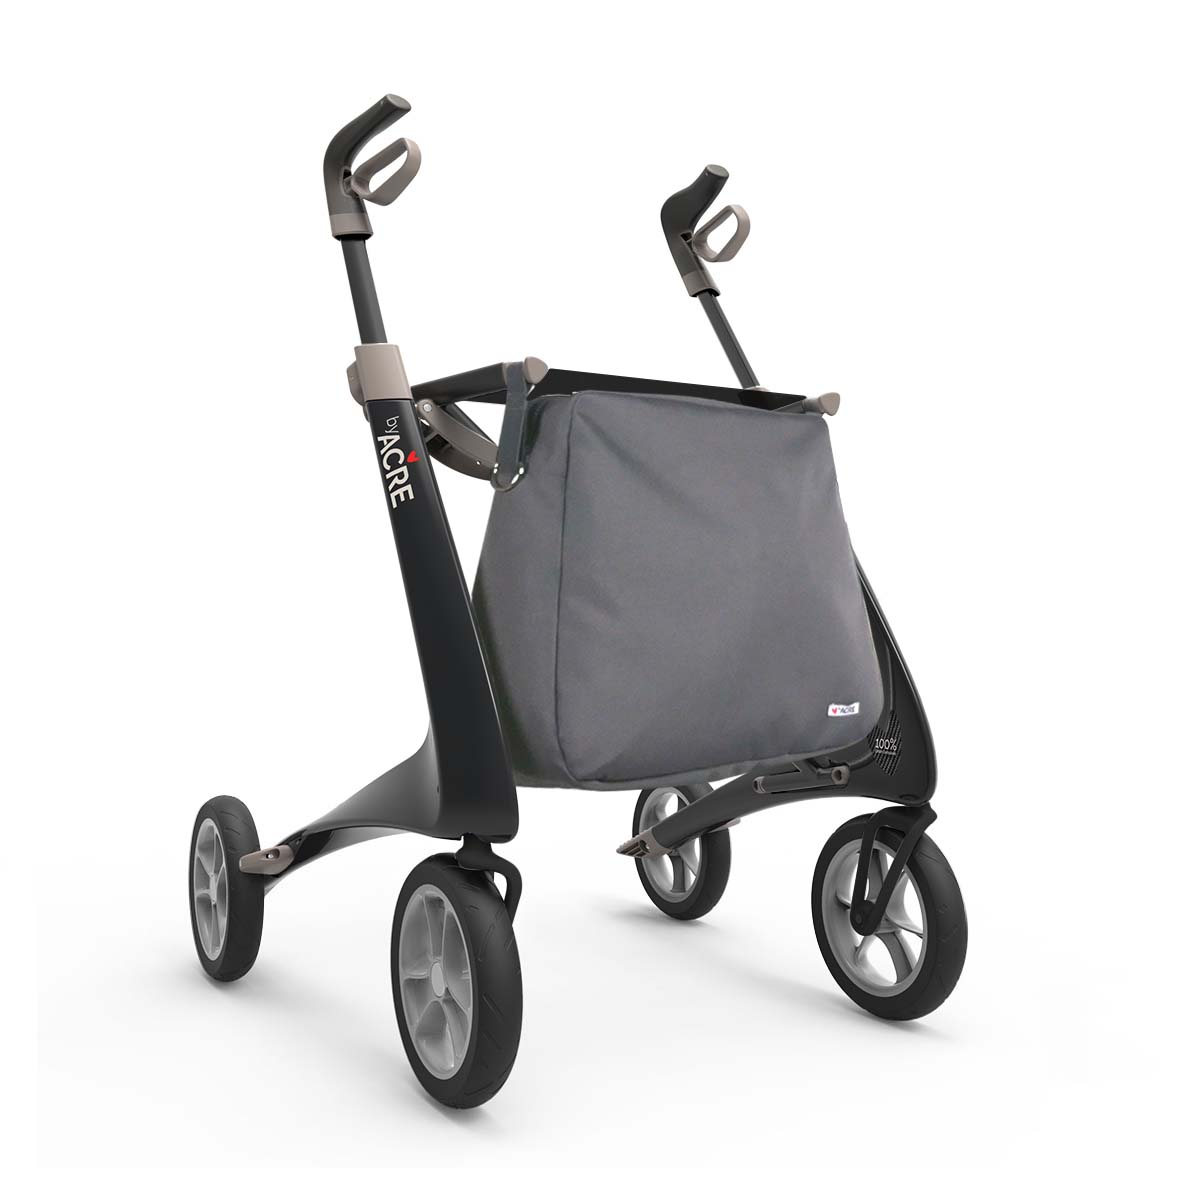 Weekend bag on the Black Carbon Ultralight Rollator byACRE - seen in perspective